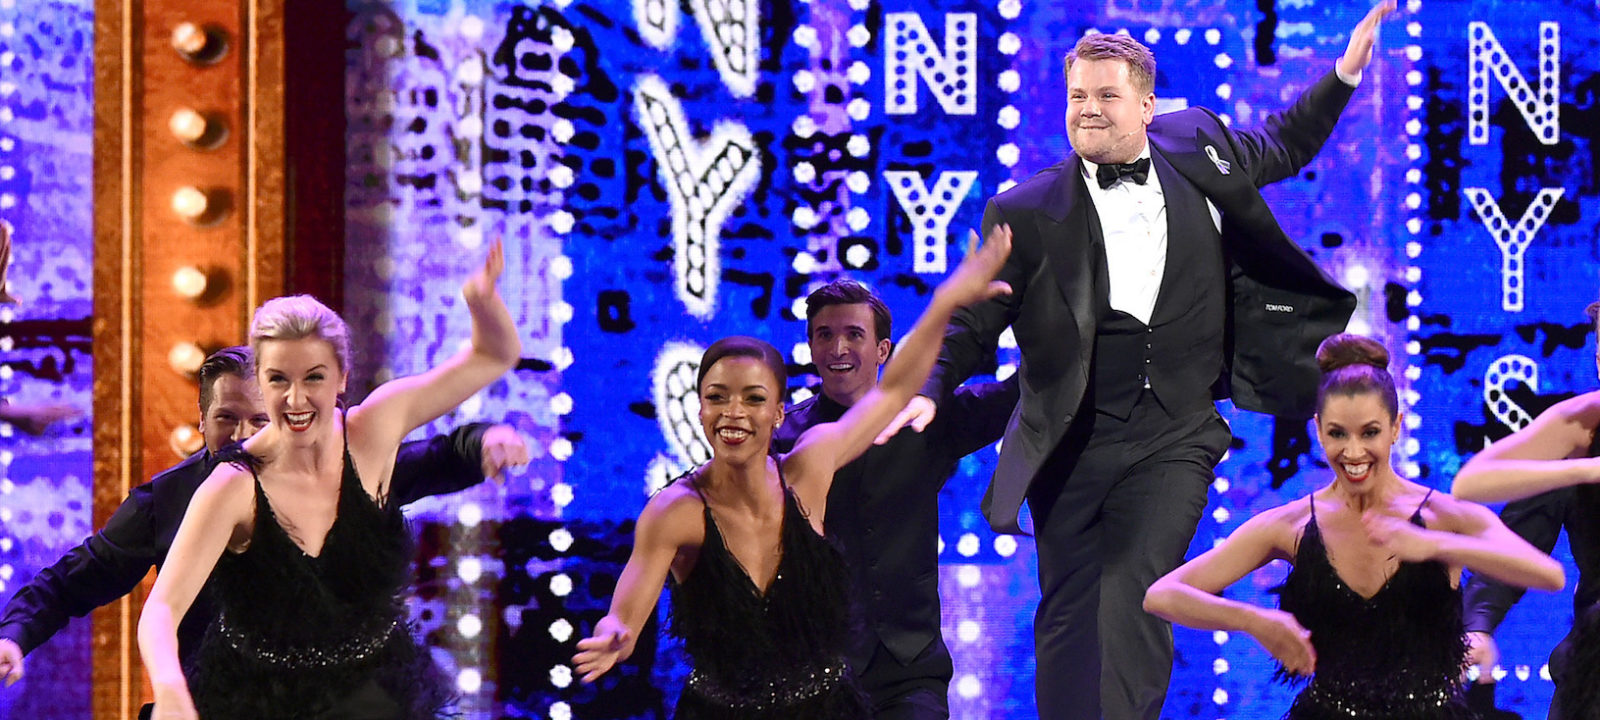 Host James Corden performs onstage during the 70th Annual Tony Awards at The Beacon Theatre on June 12, 2016 in New York City.